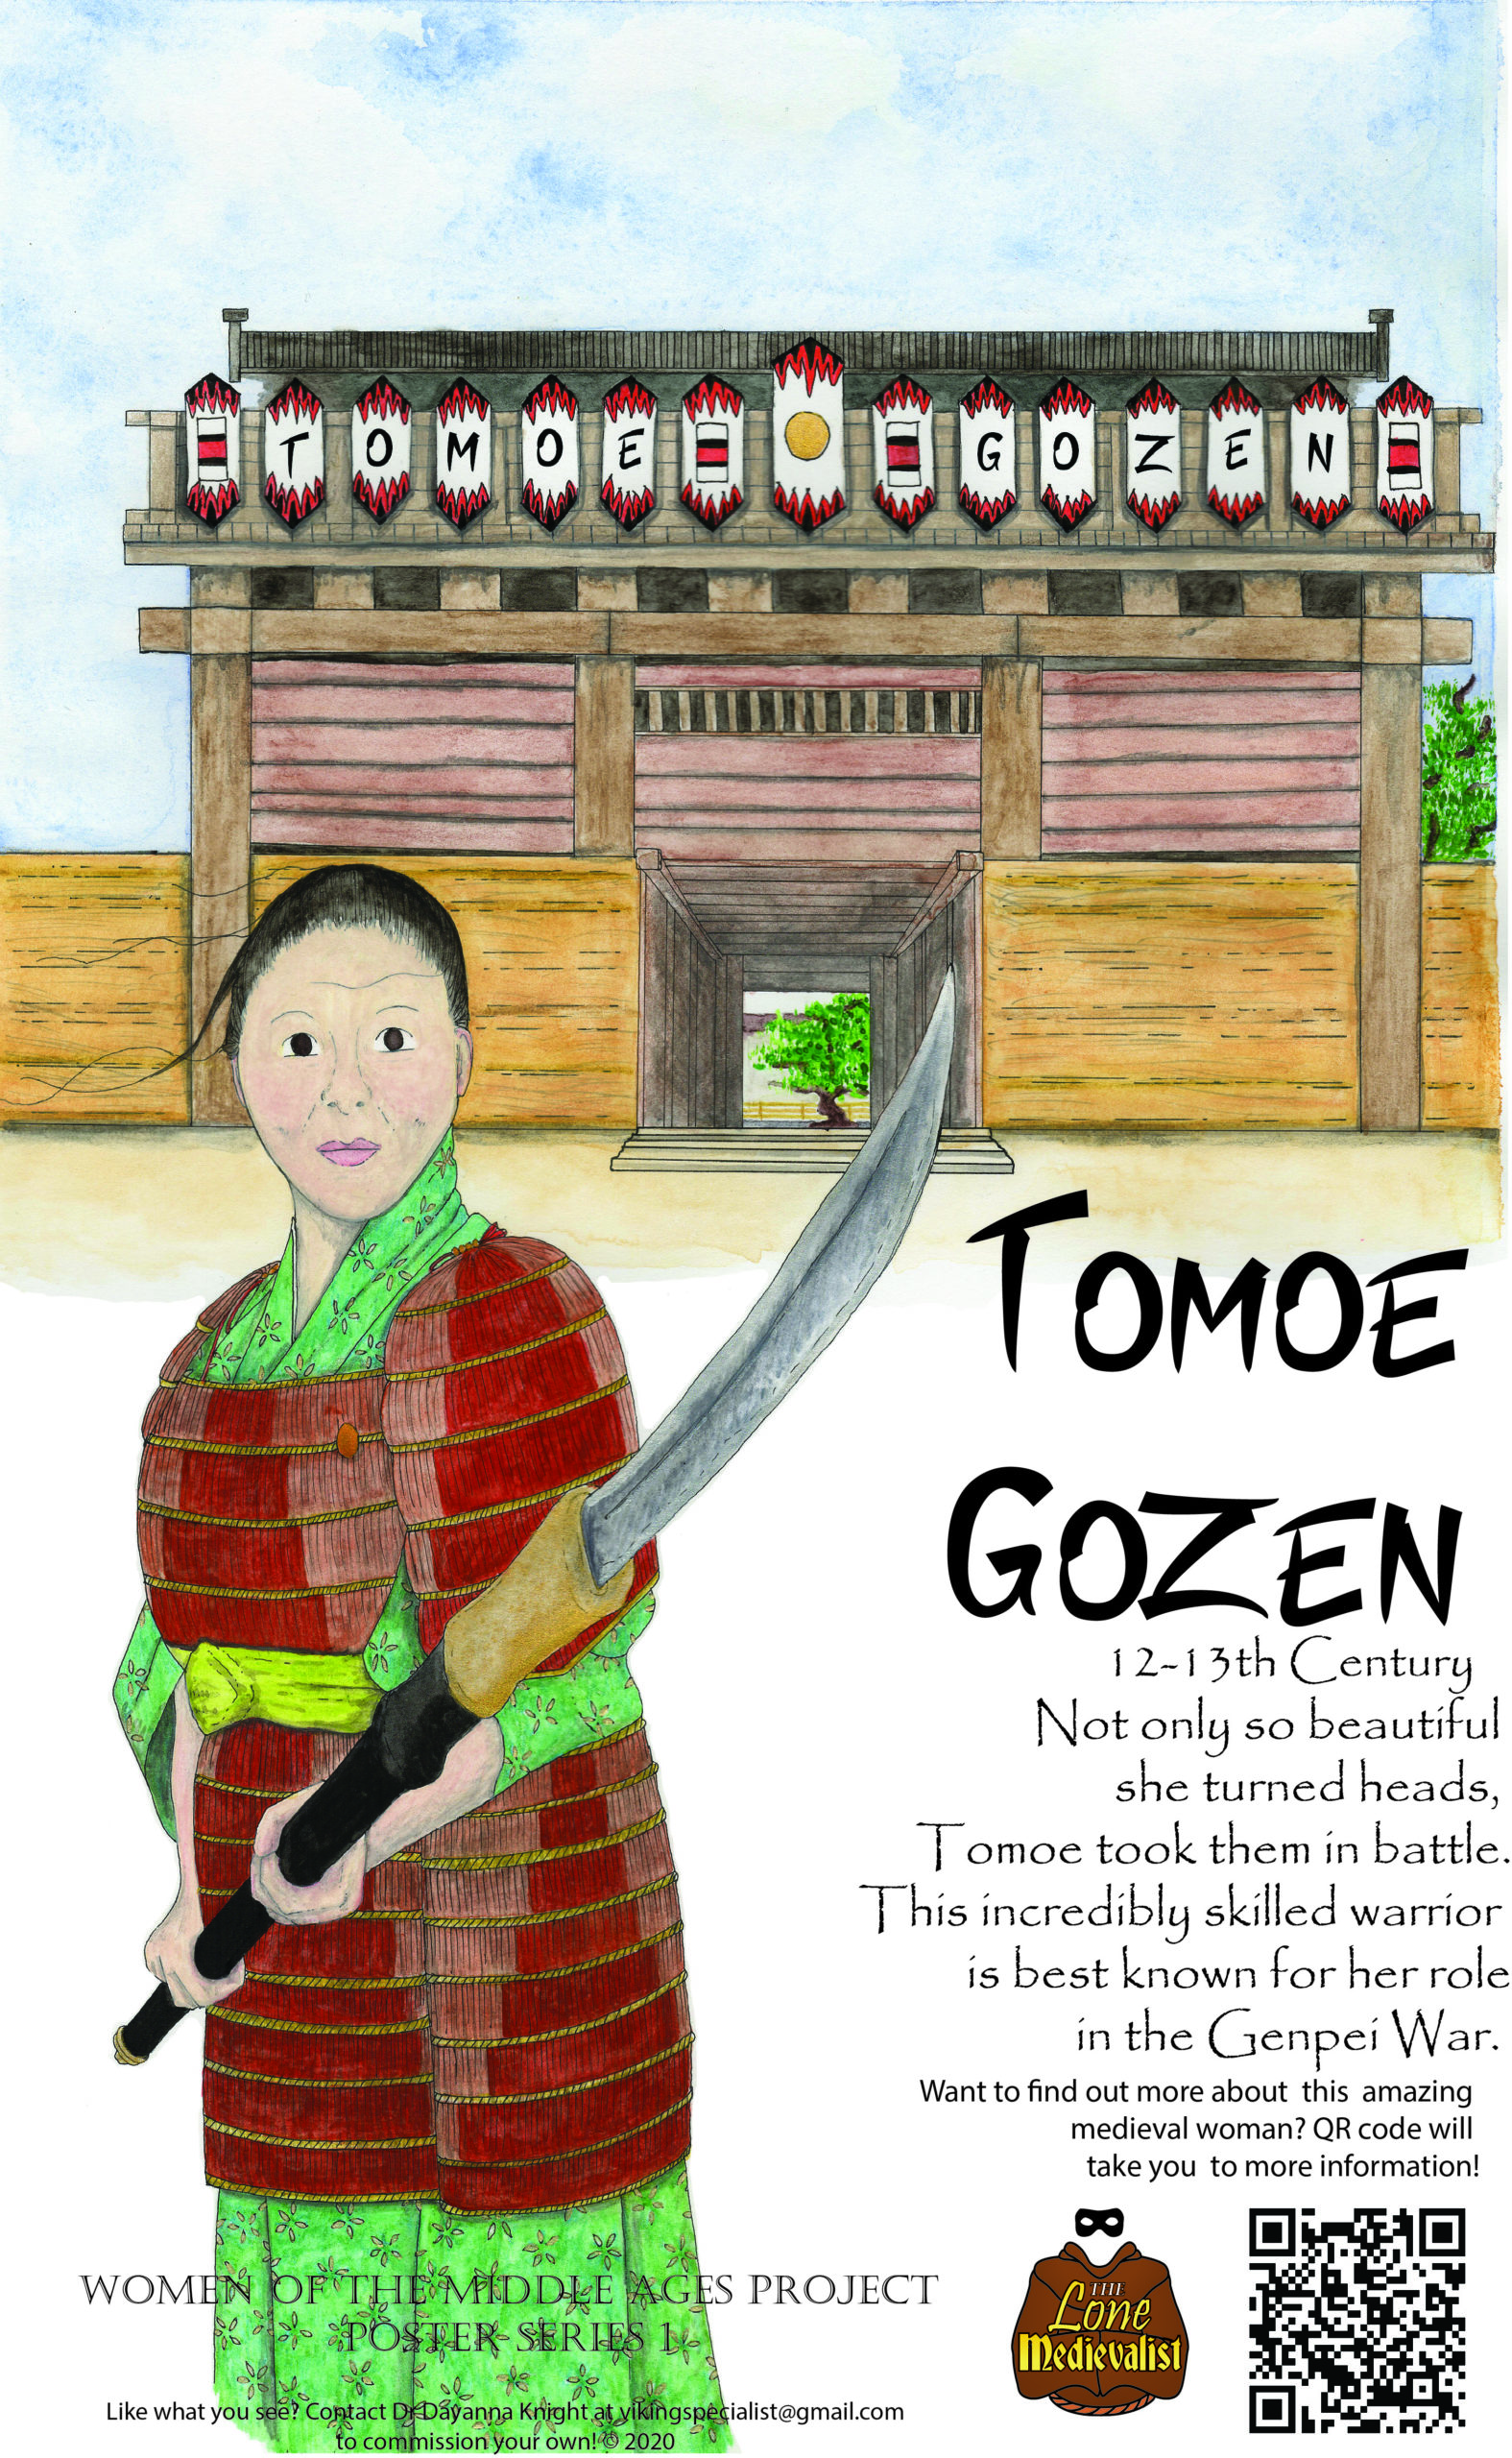 Poster with information about Tomoe Gozen